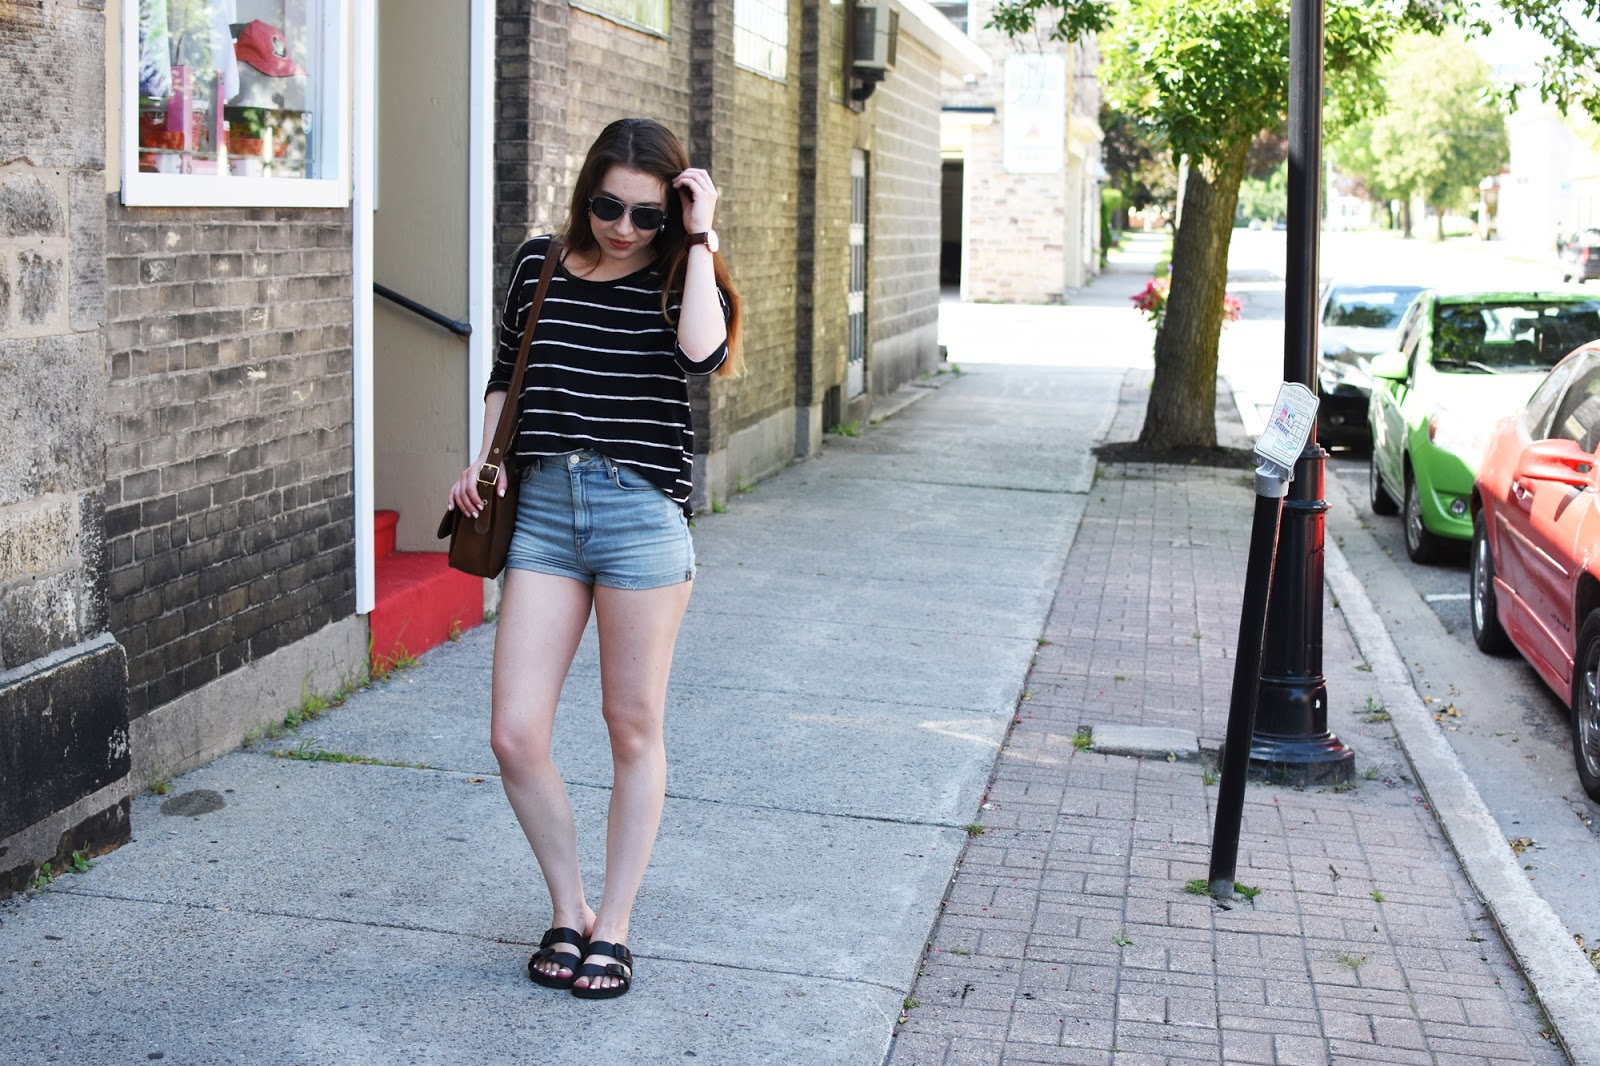 OOTD with Aritzia high waisted denim shorts, striped Zara top, vintage Coach bag, Warby Parker Crossfield glasses, and Daniel Wellington watch